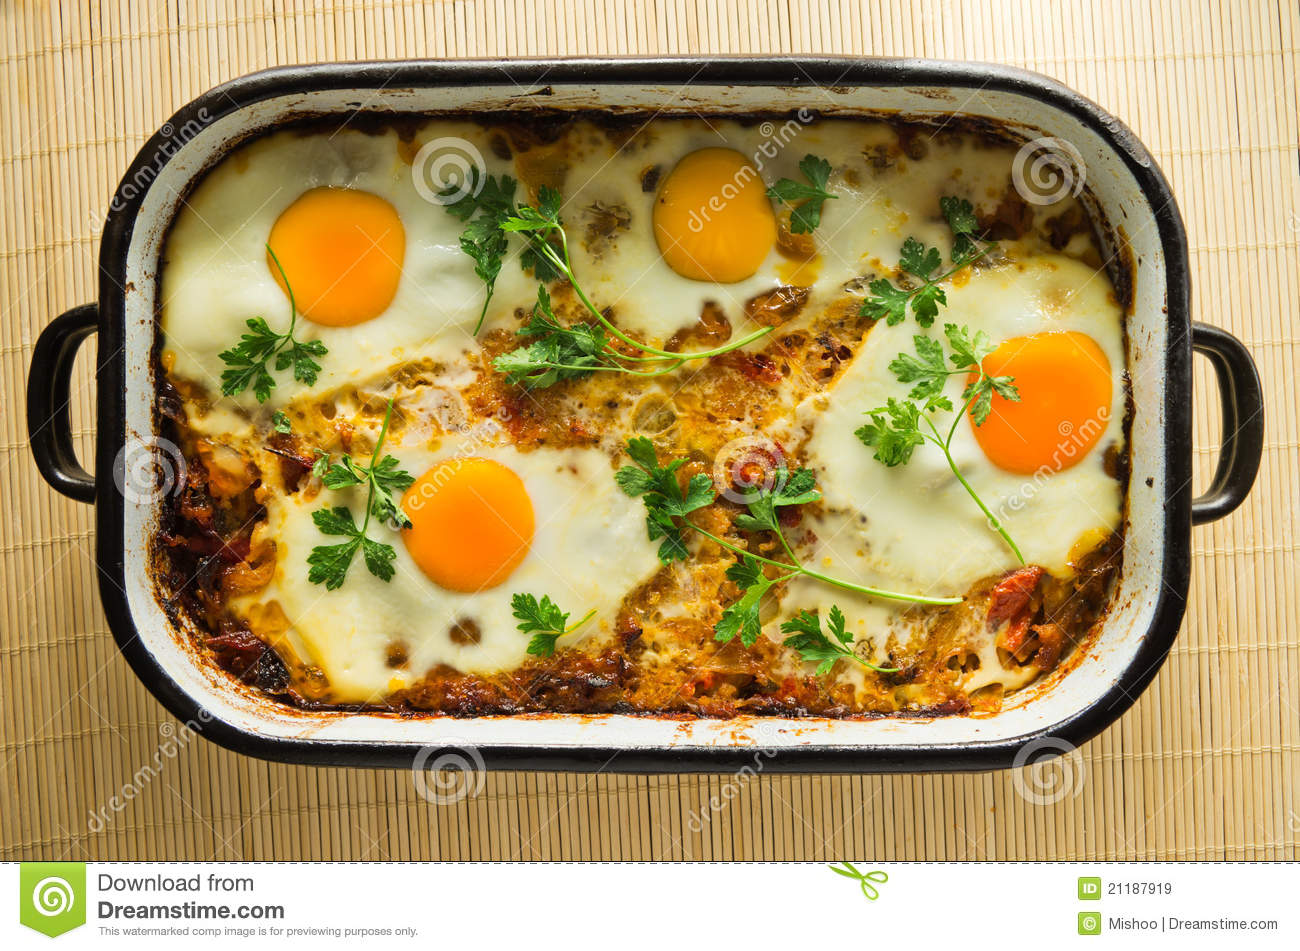 Eggs and vegetables cooked